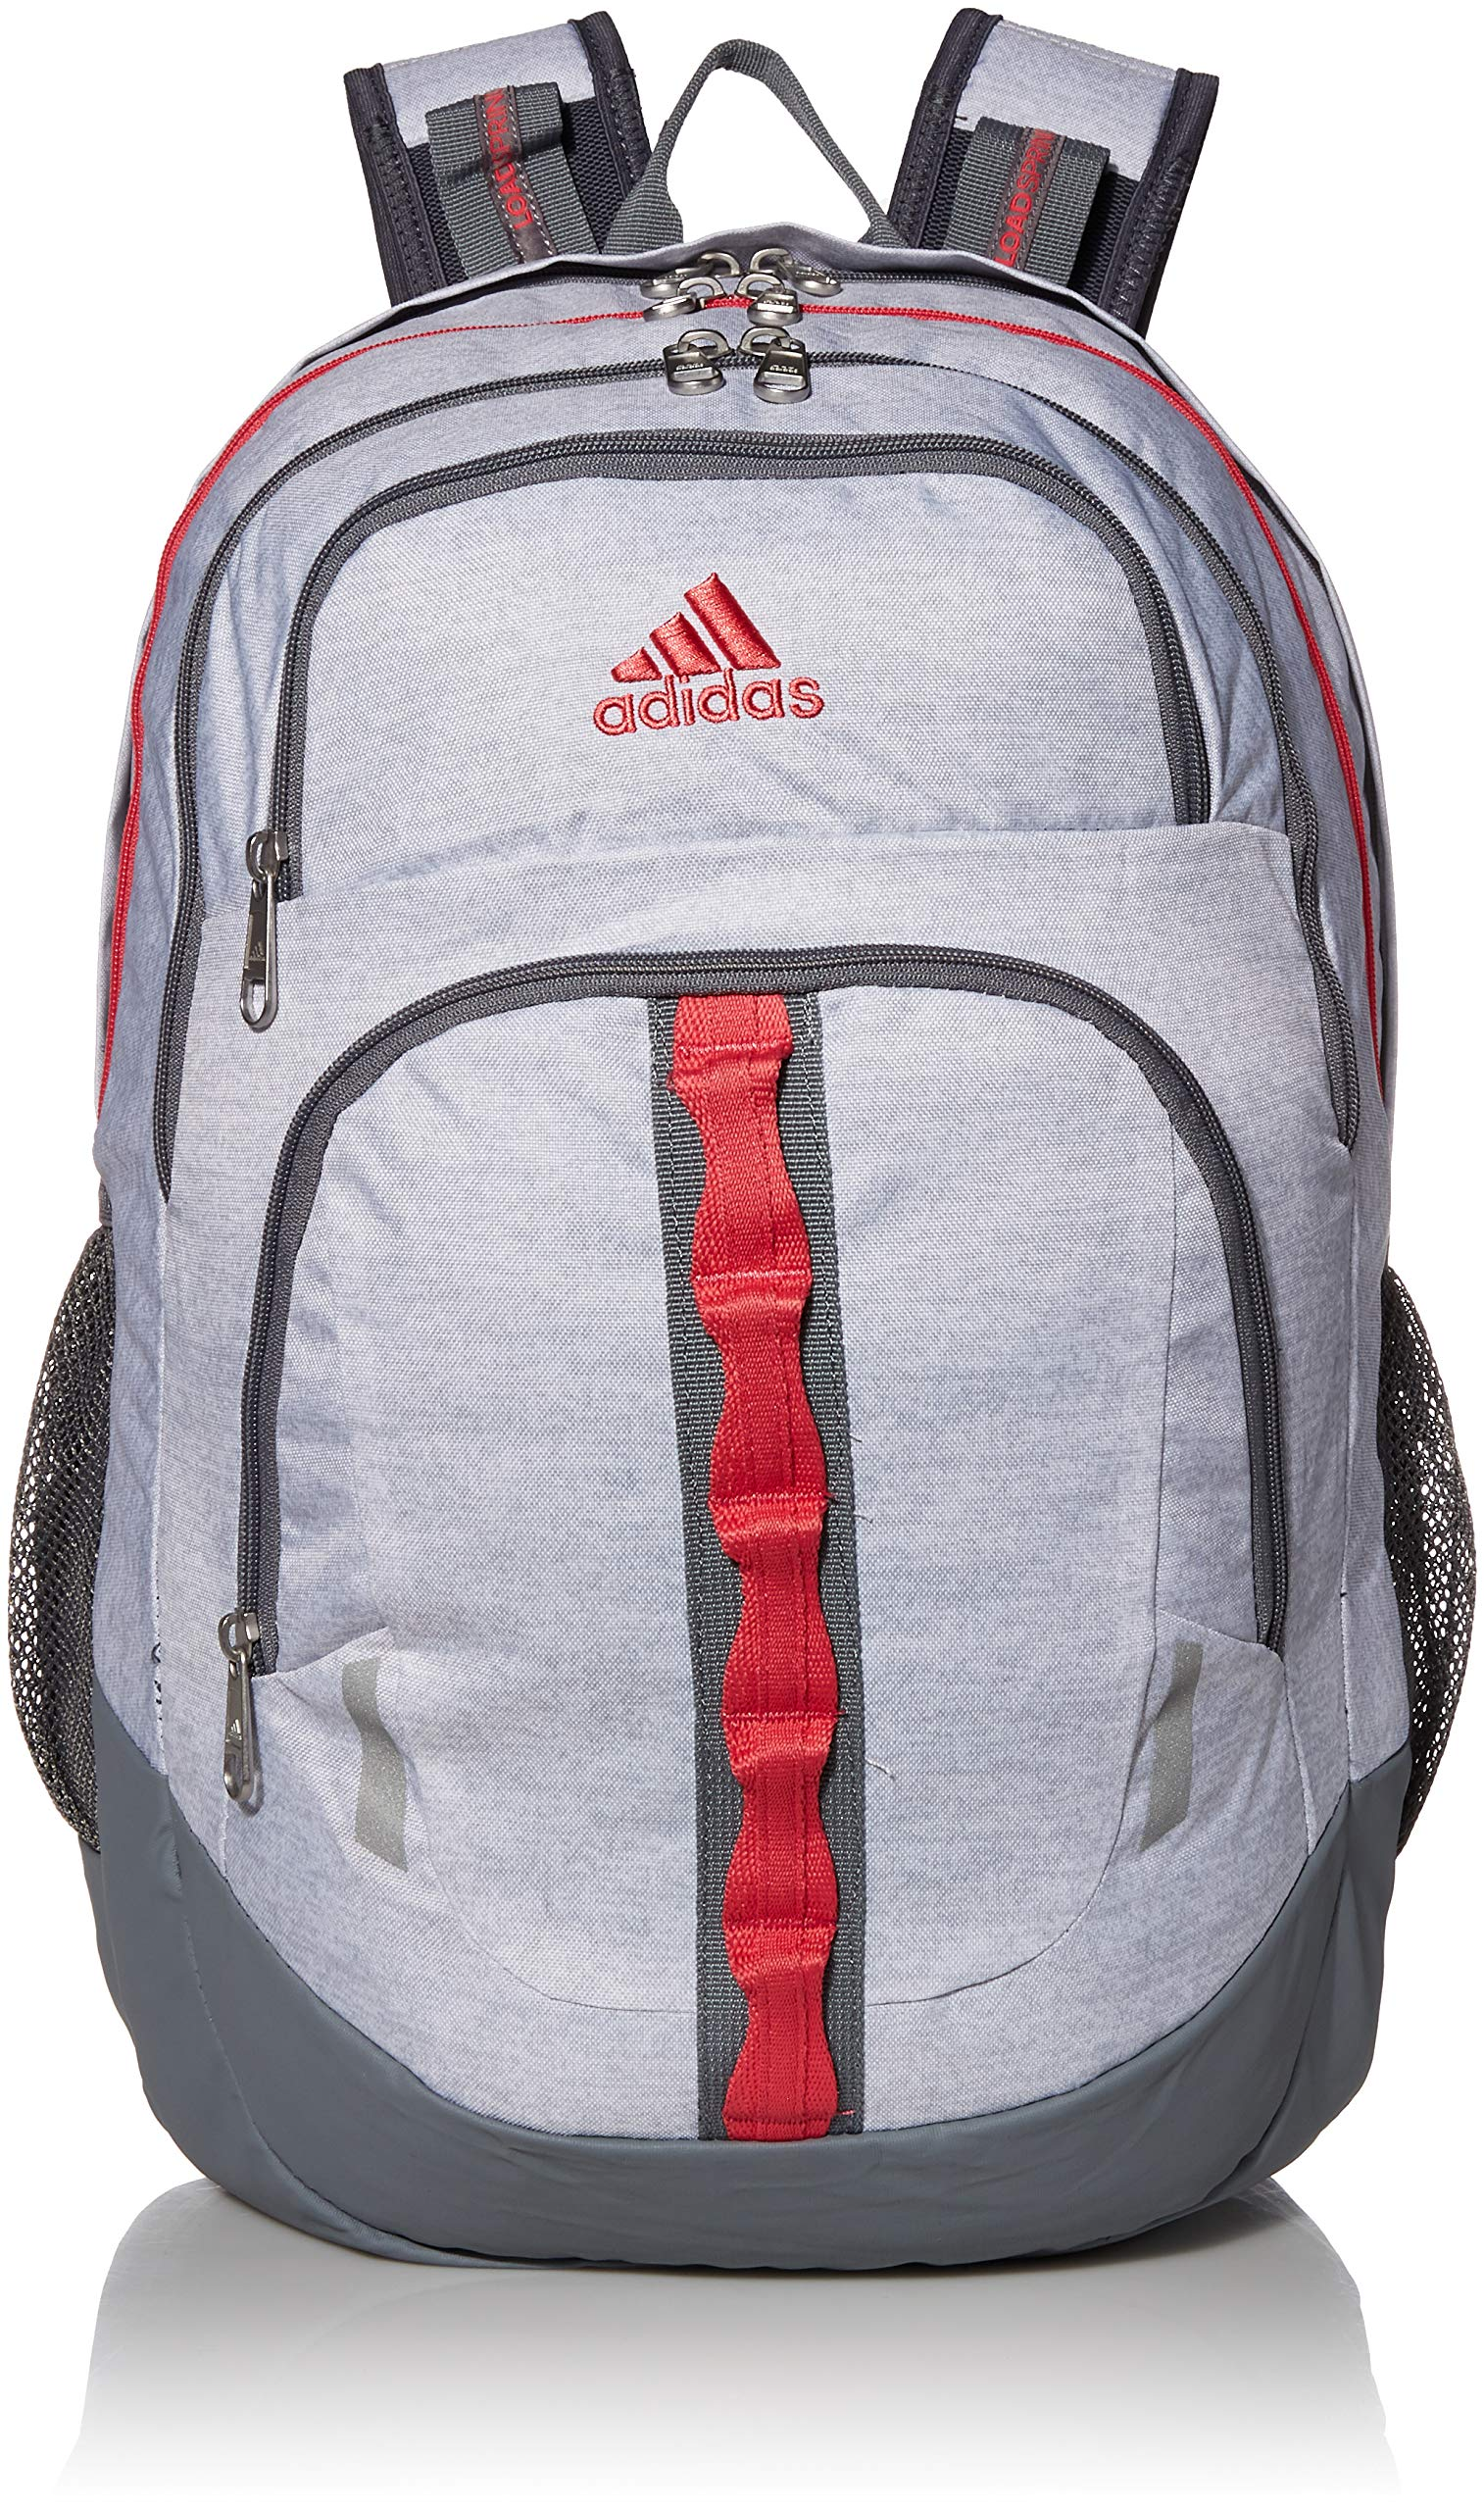 adidas Unisex Prime Backpack, Jersey White/Real Pink/Grey, ONE SIZE by adidas